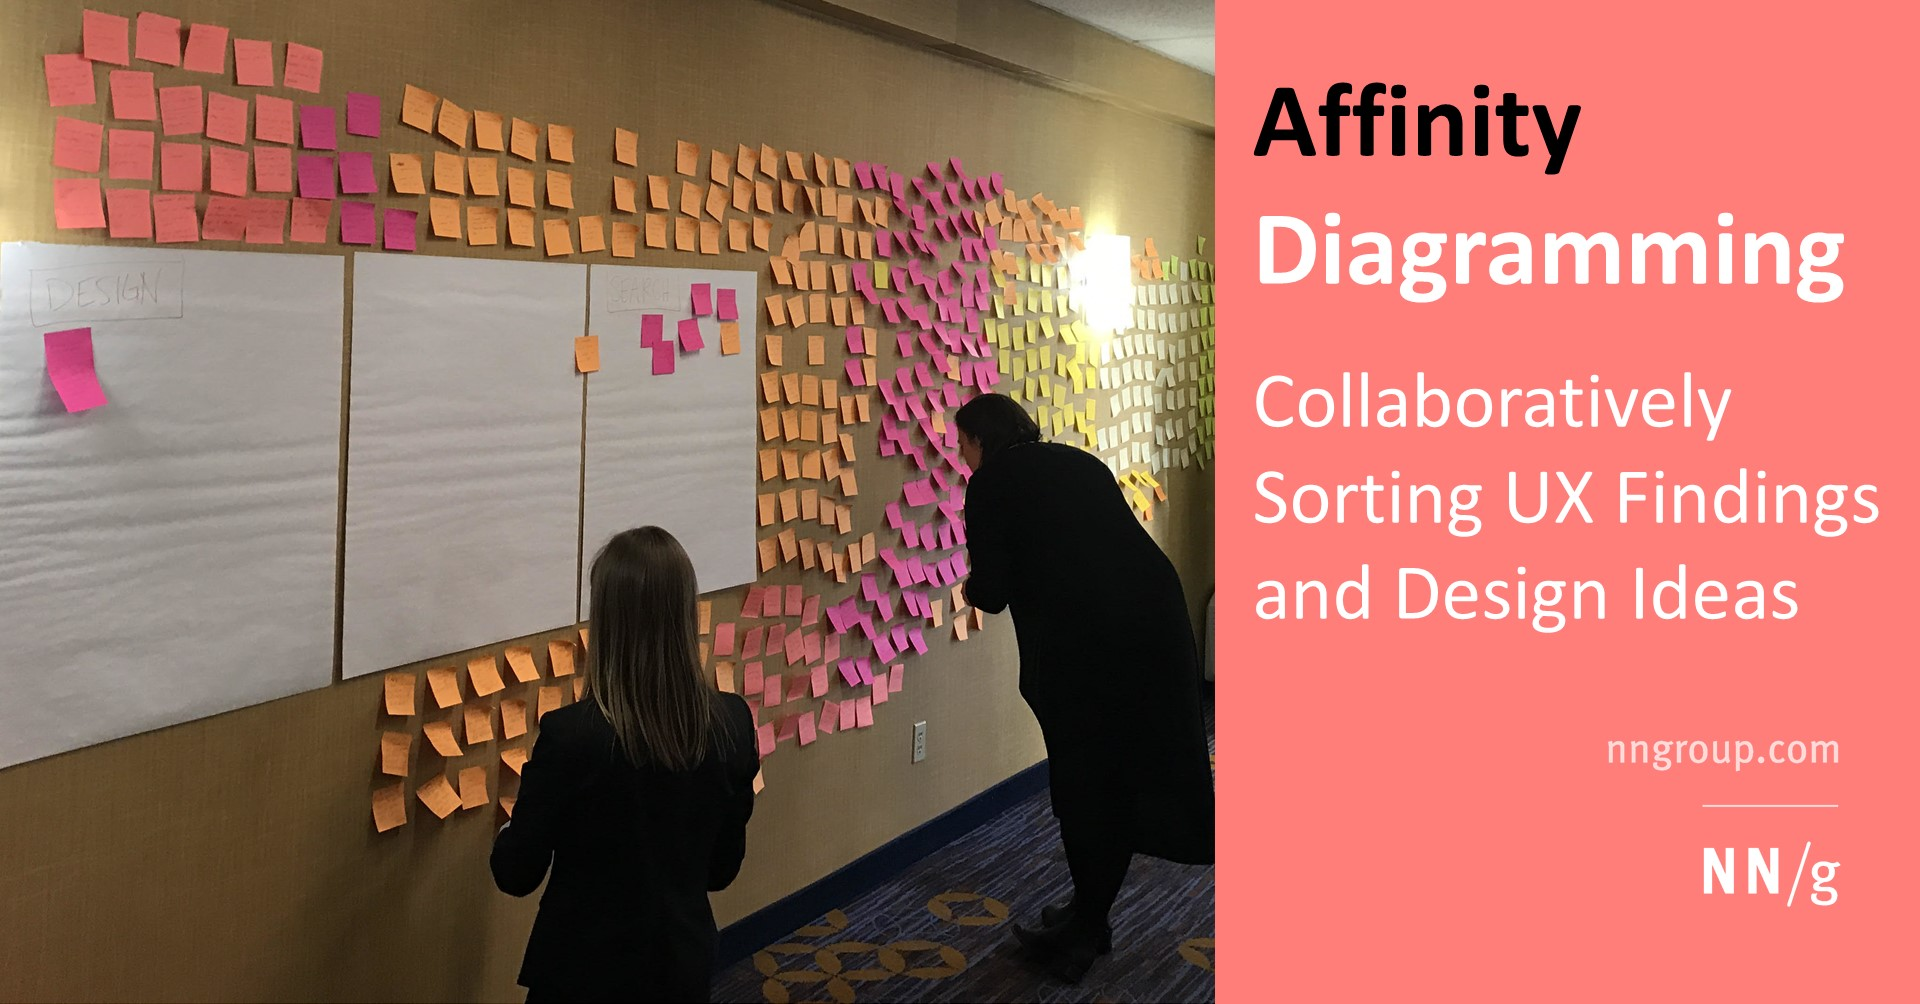 Affinity Diagram affinity diagramming: collaboratively sort ux findings